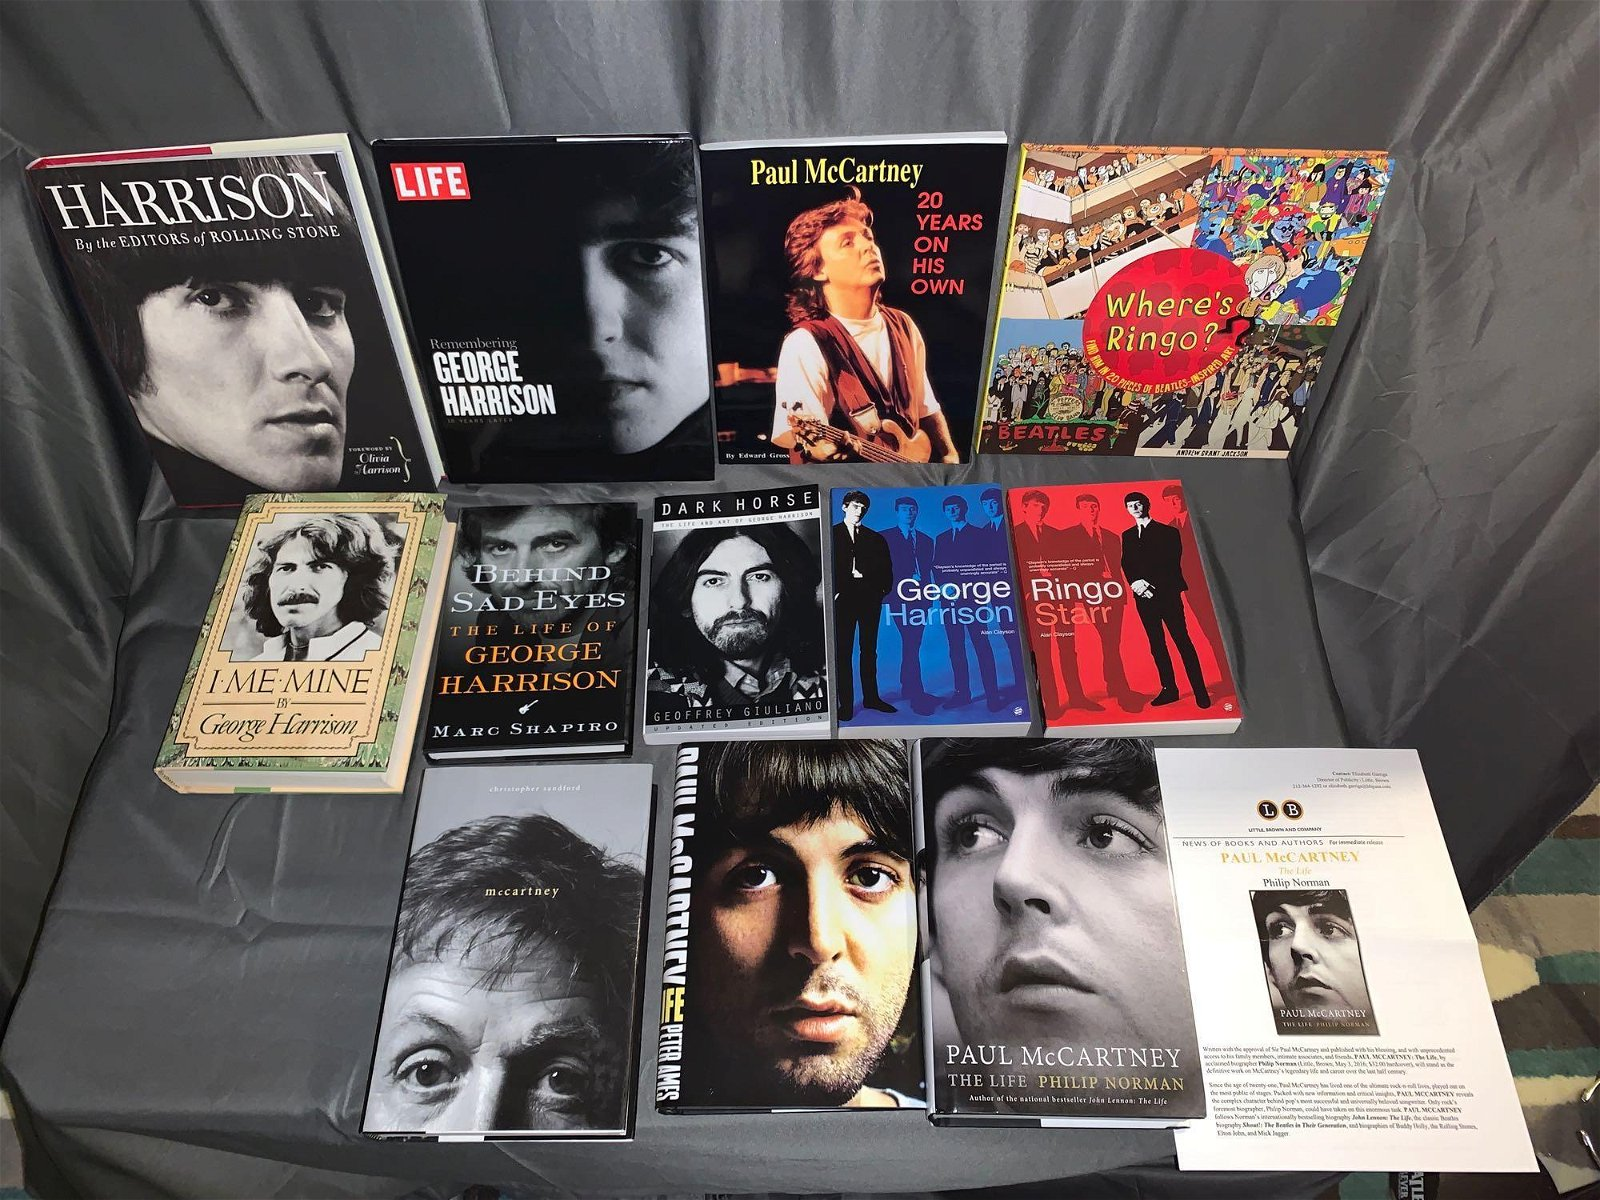 12 Books About the Solo Beatles